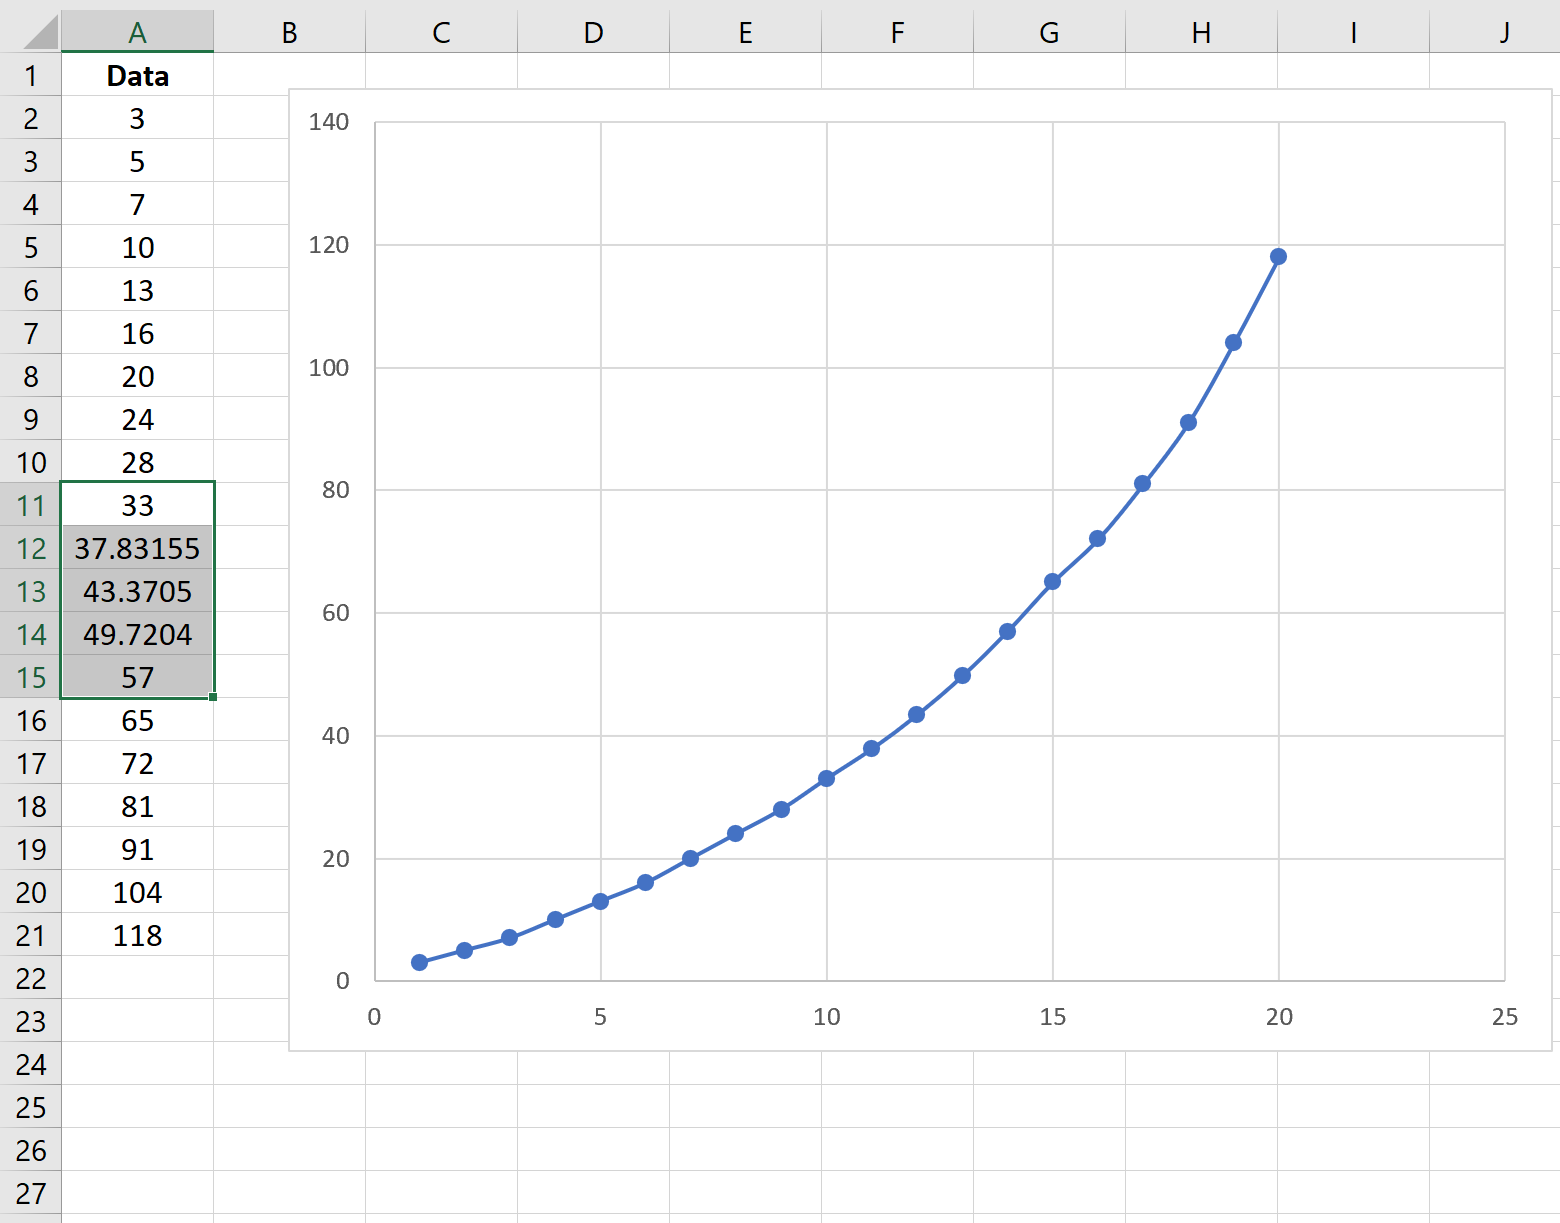 Interpolating missing values in Excel